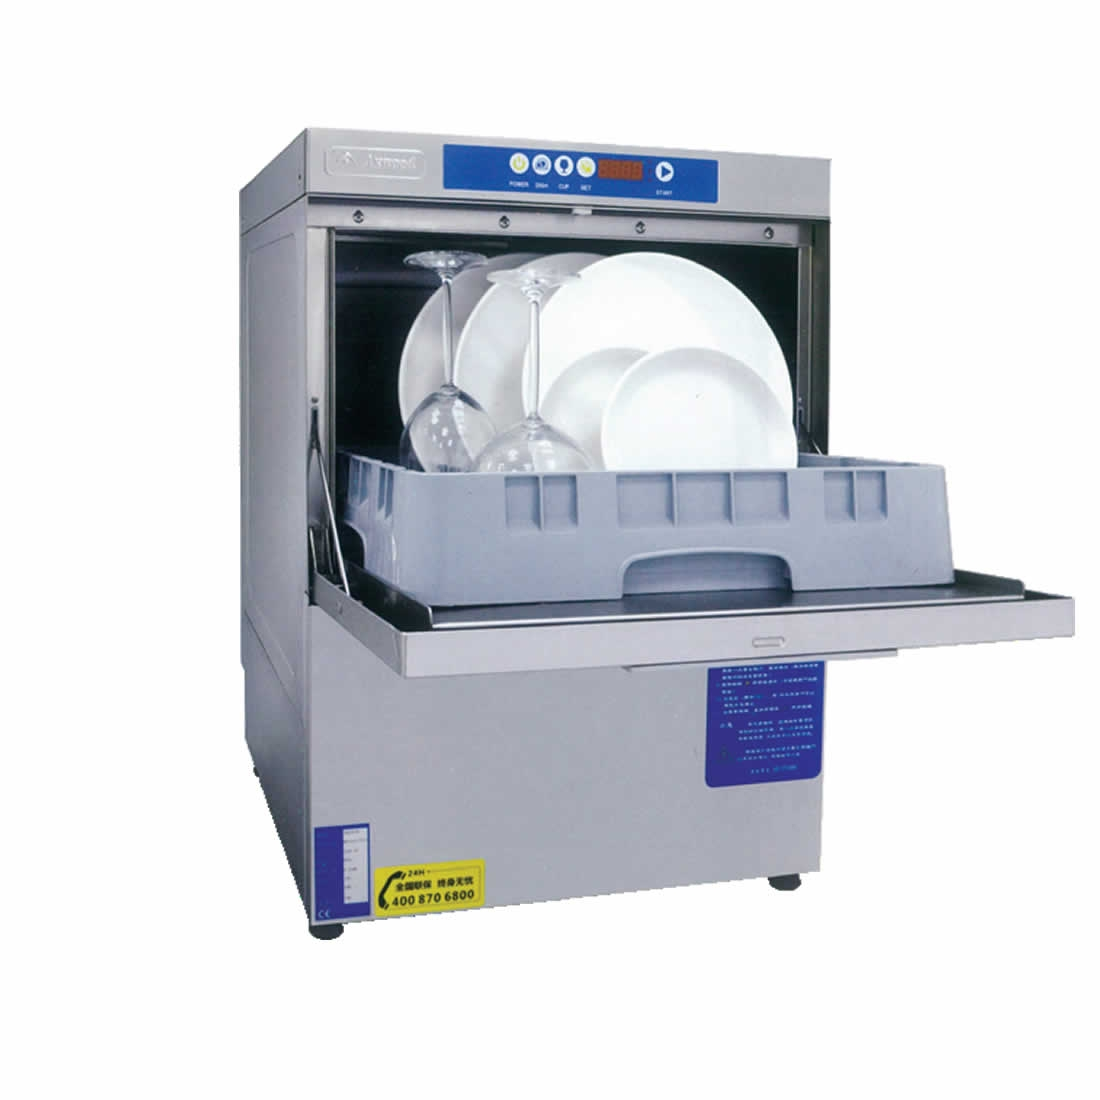 Axwood Underbench Dishwasher with auto drain pump - UCD-500